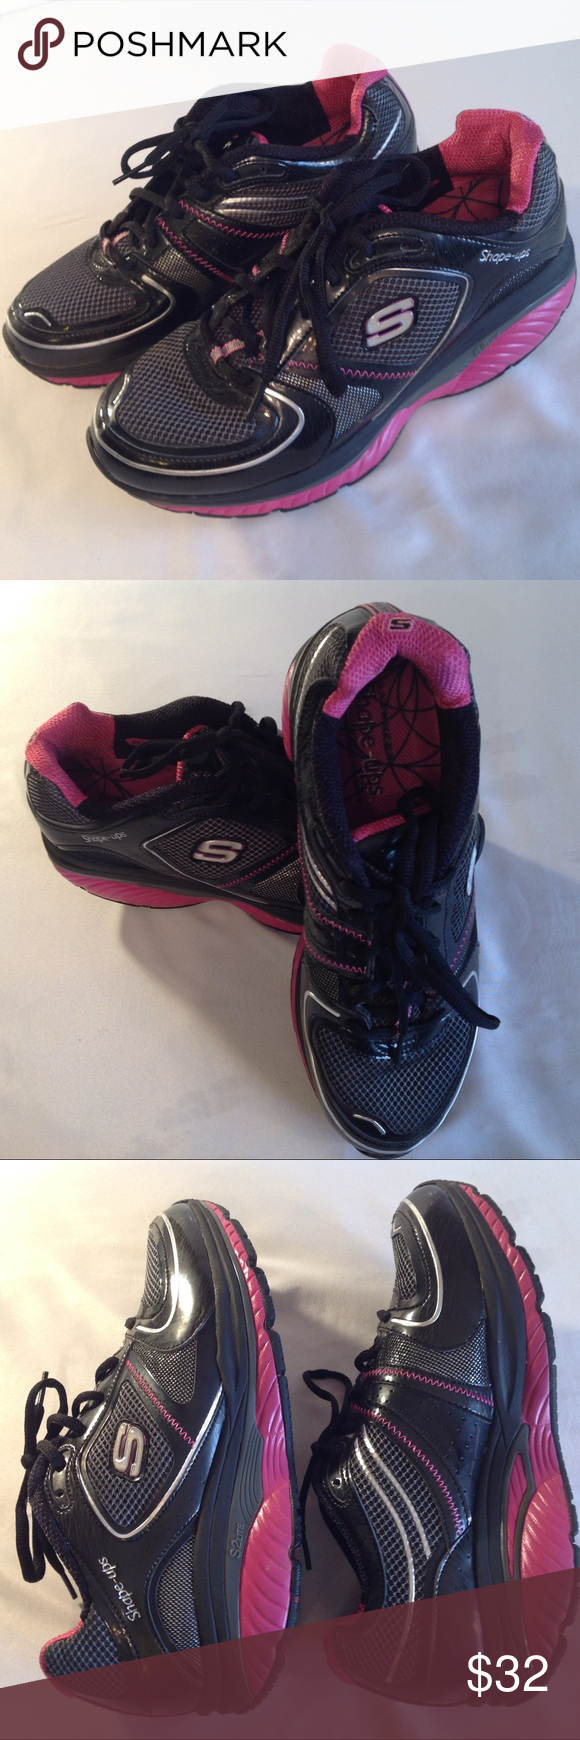 skechers shape ups womens size 7